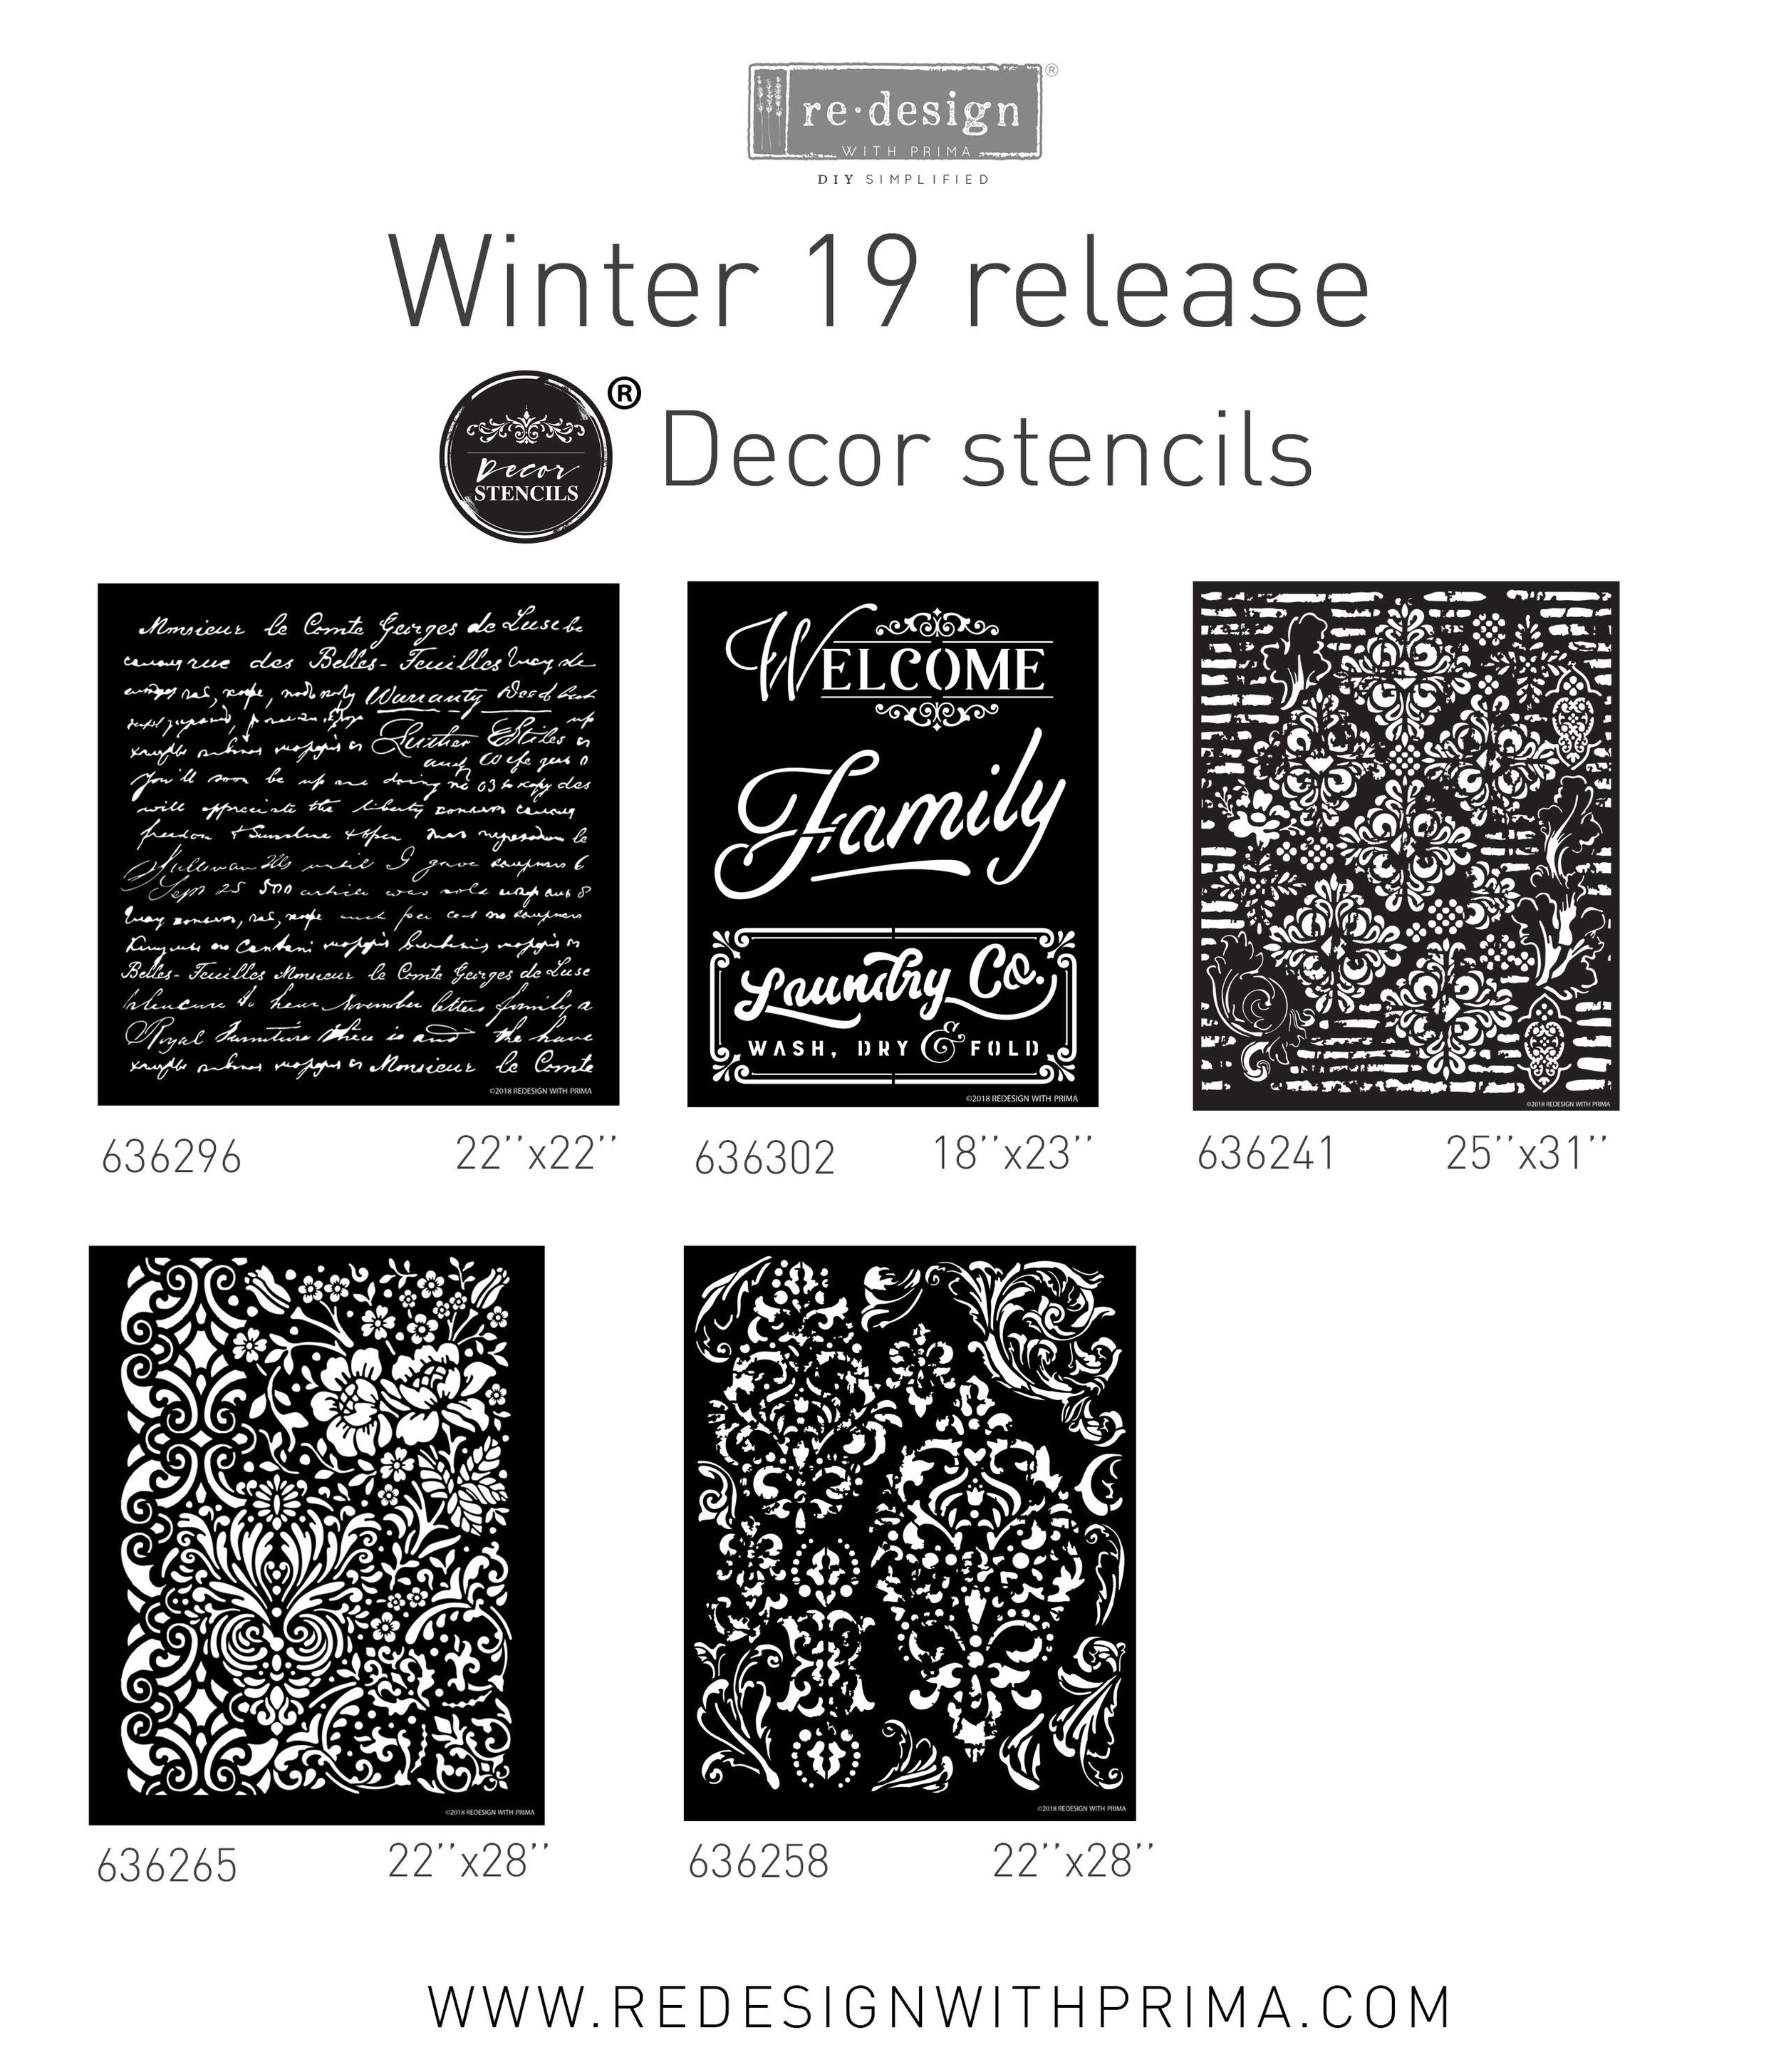 We have 5 new 3D Decor Stencil designs that are not only sturdy for adding dimensional mediums but also large enough to add detail and design to your walls or furniture projects. We combined beautiful images to create collage style designs that are sure to add drama to any project..